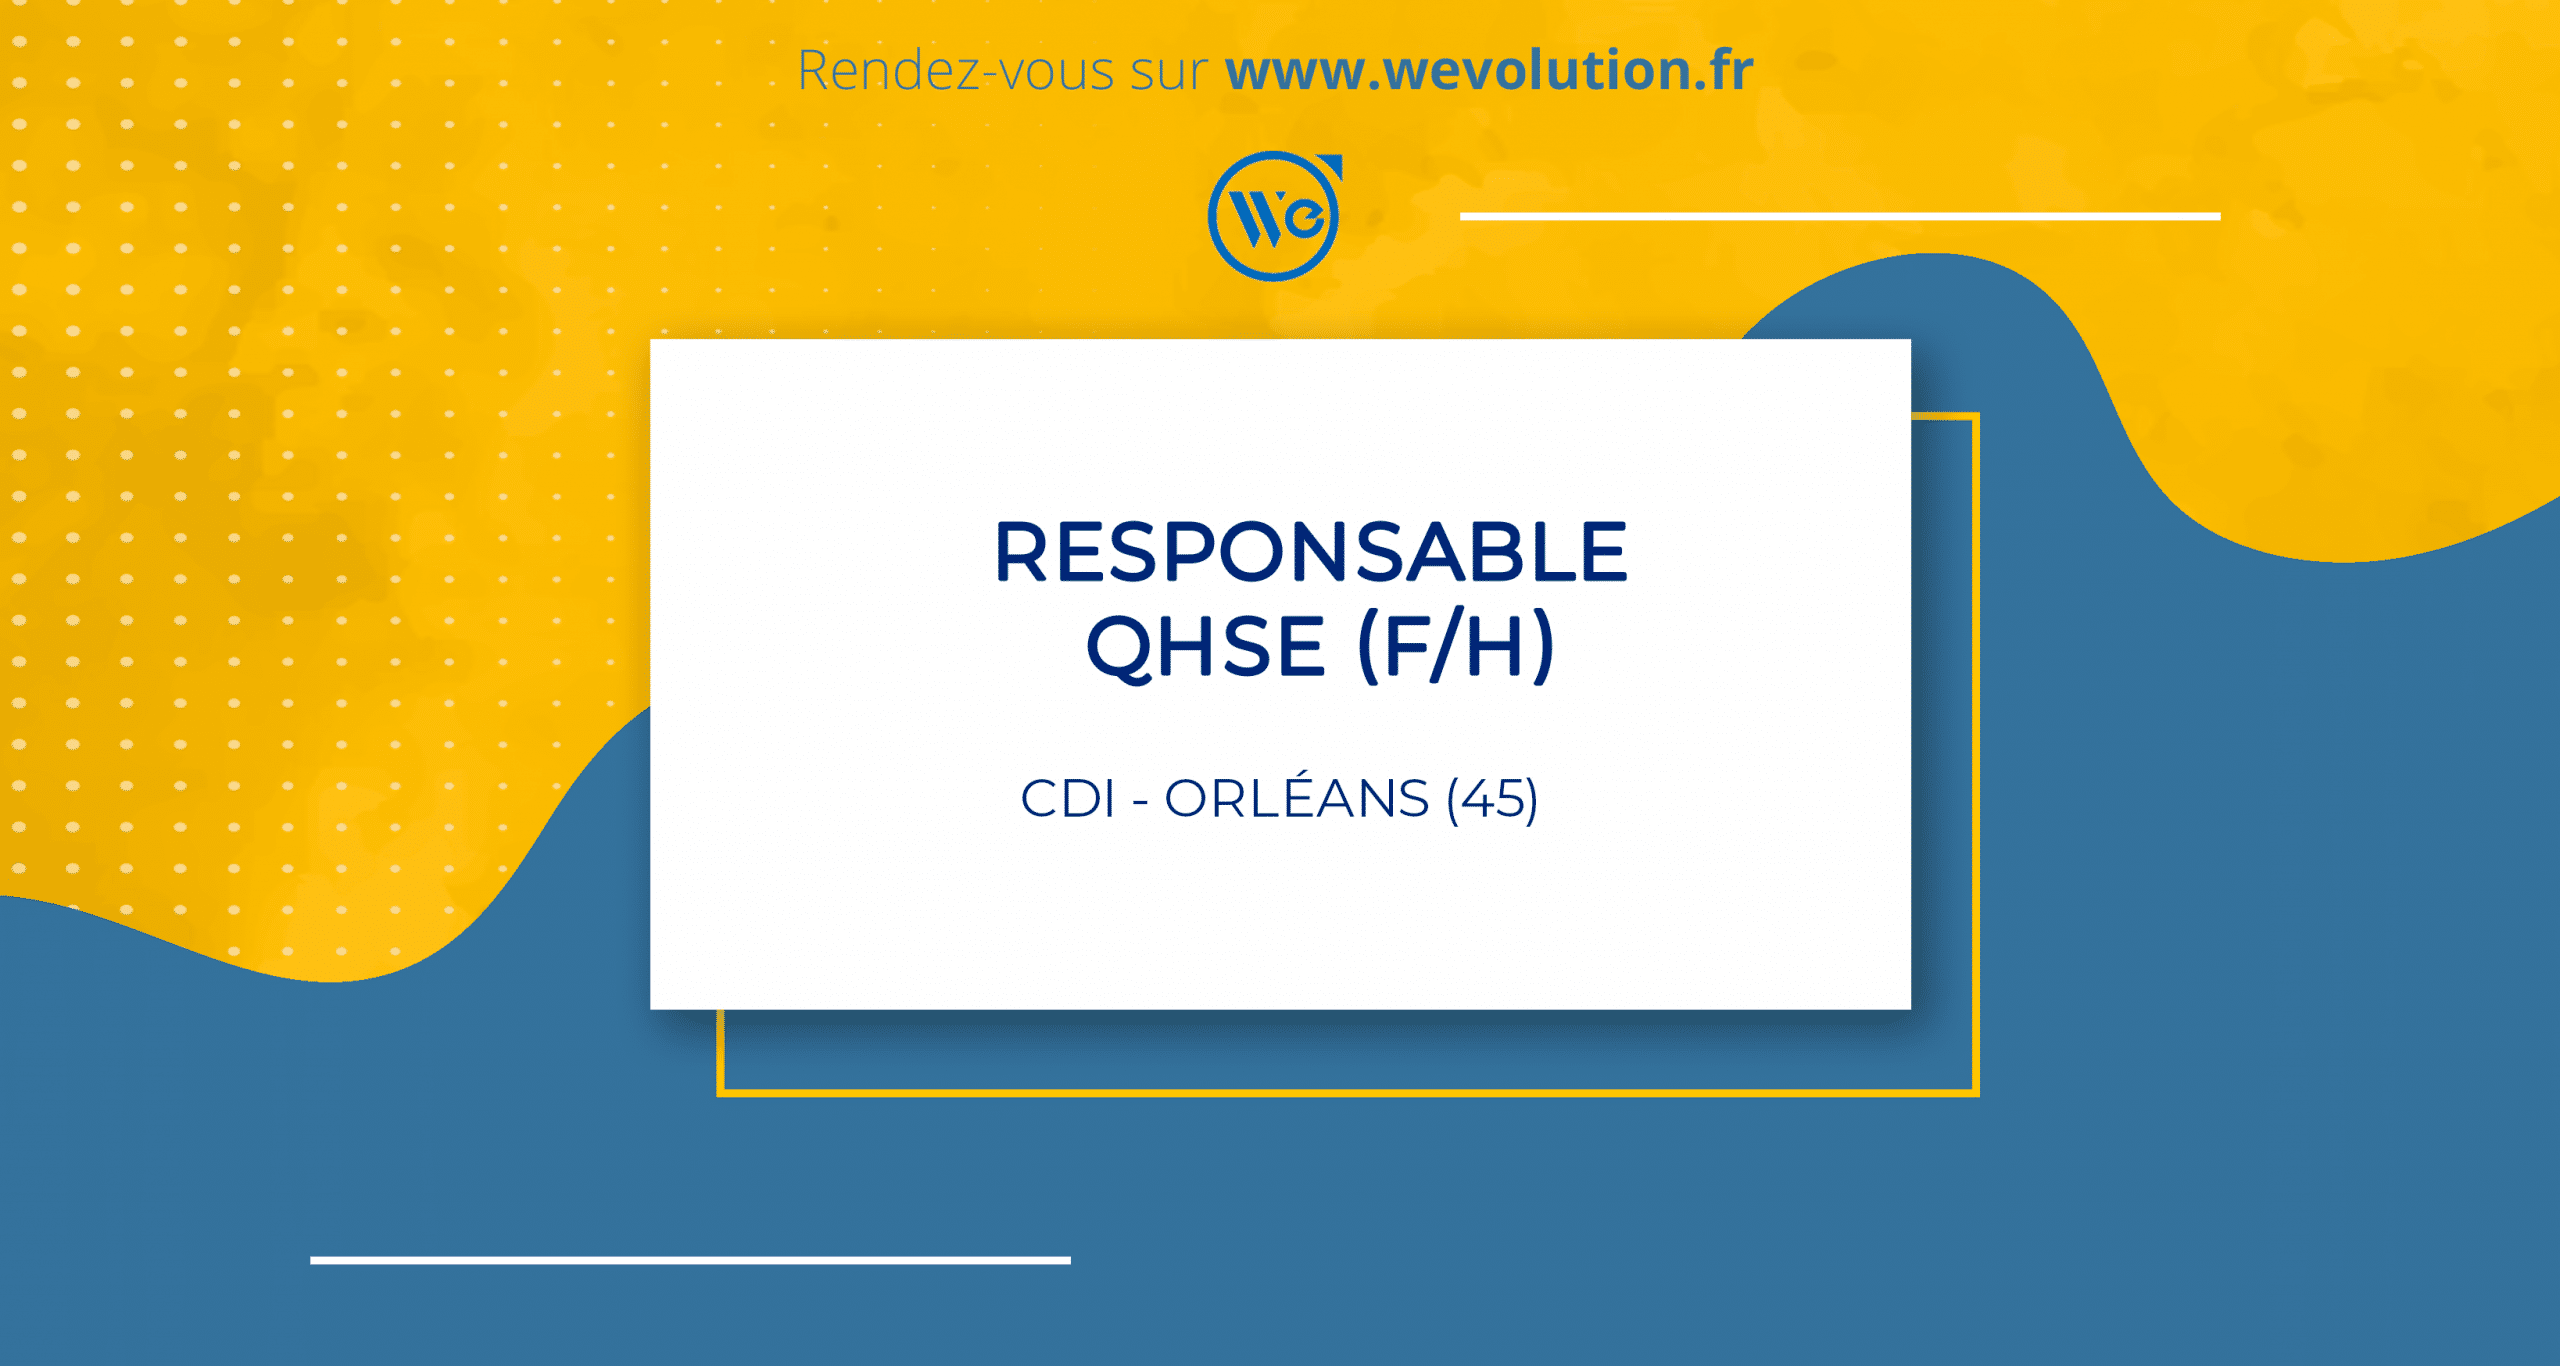 REPONSABLE QHSE (F/H)